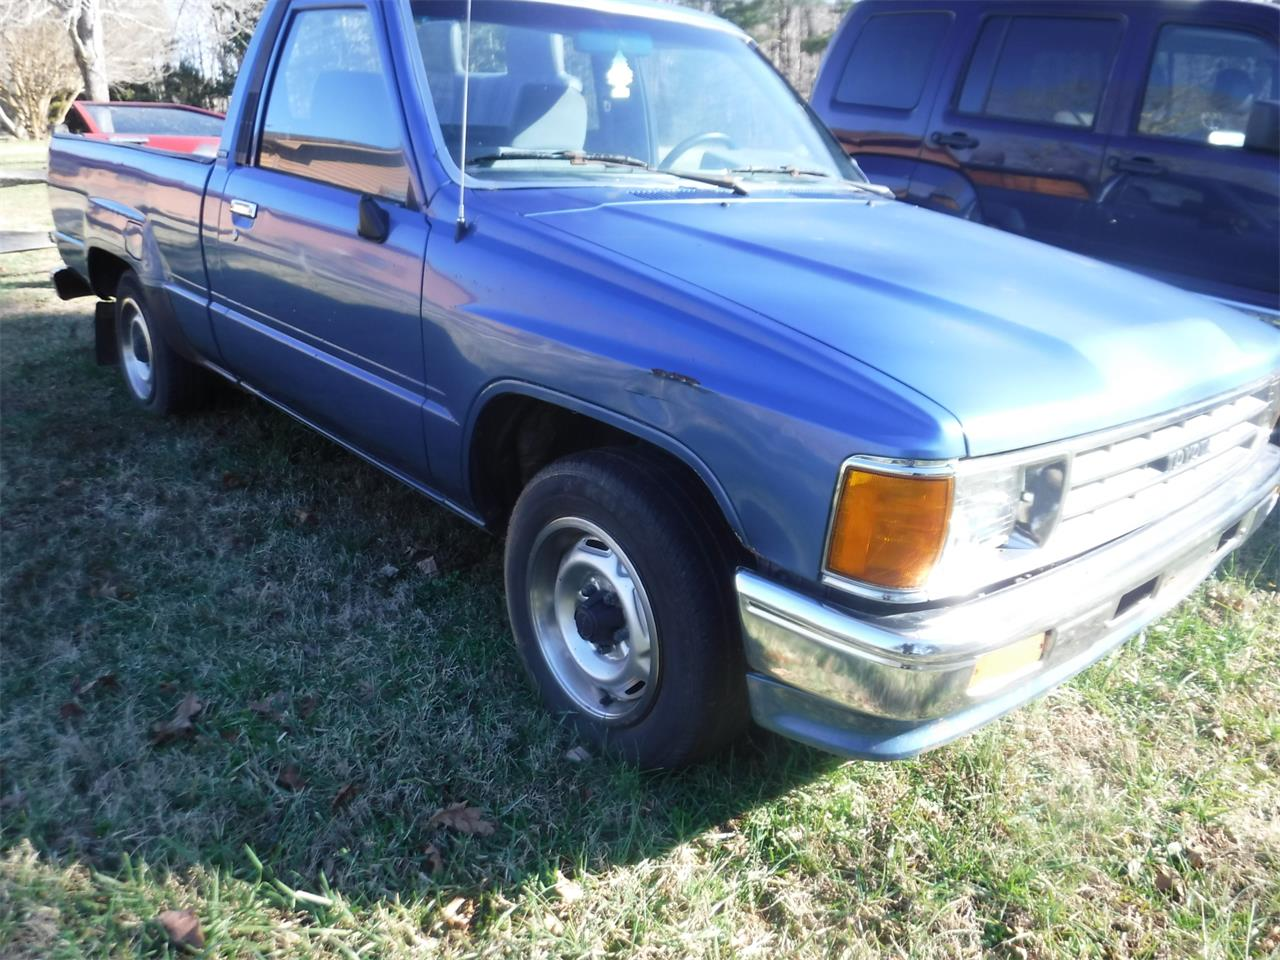 for sale 1988 toyota tacoma in milford, ohio cars - milford, oh at geebo